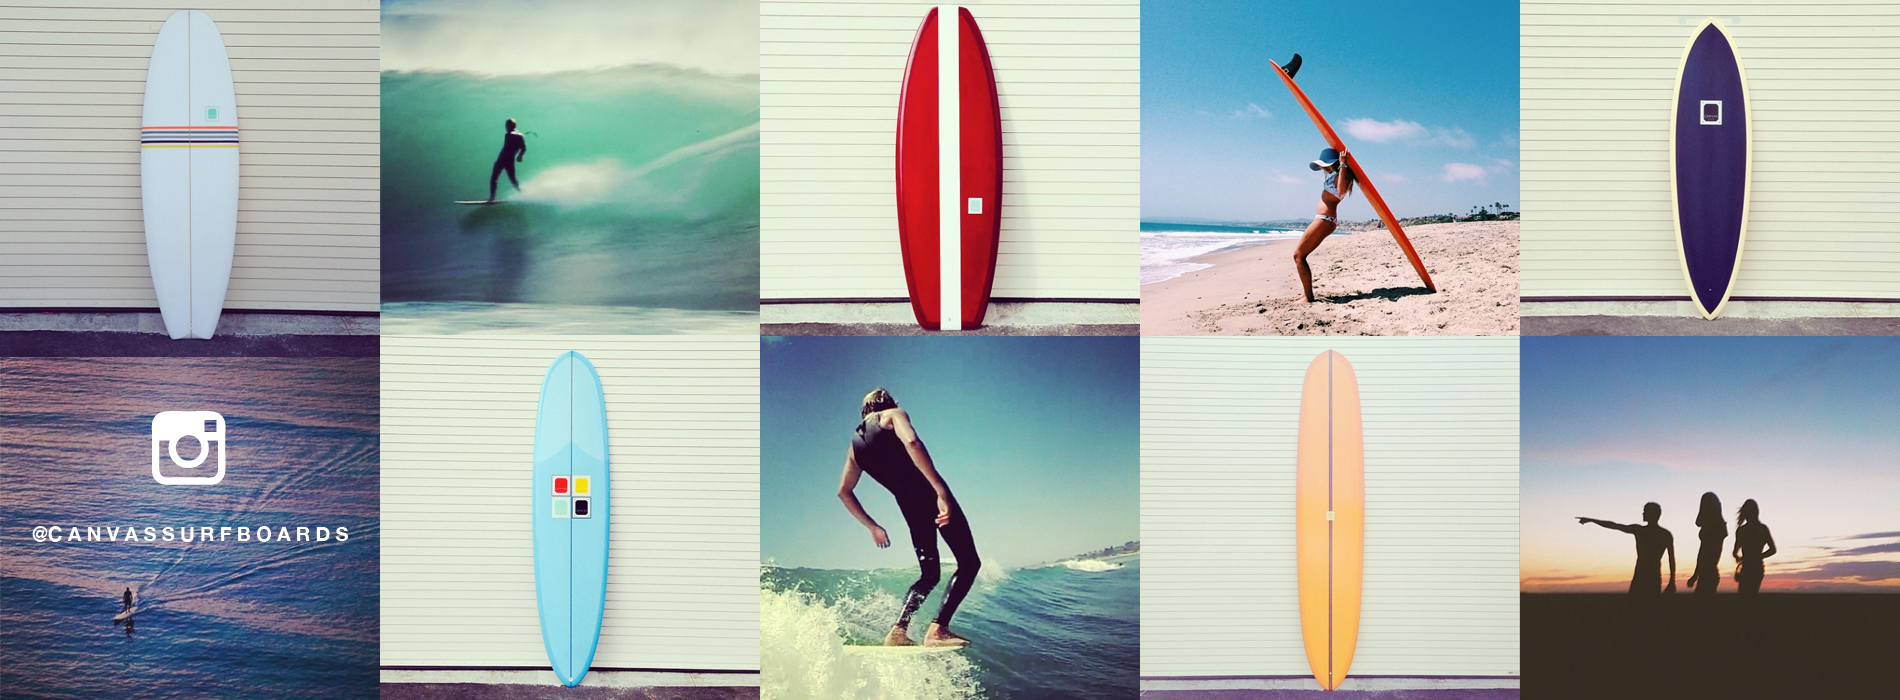 canvas-surfboards-instagram